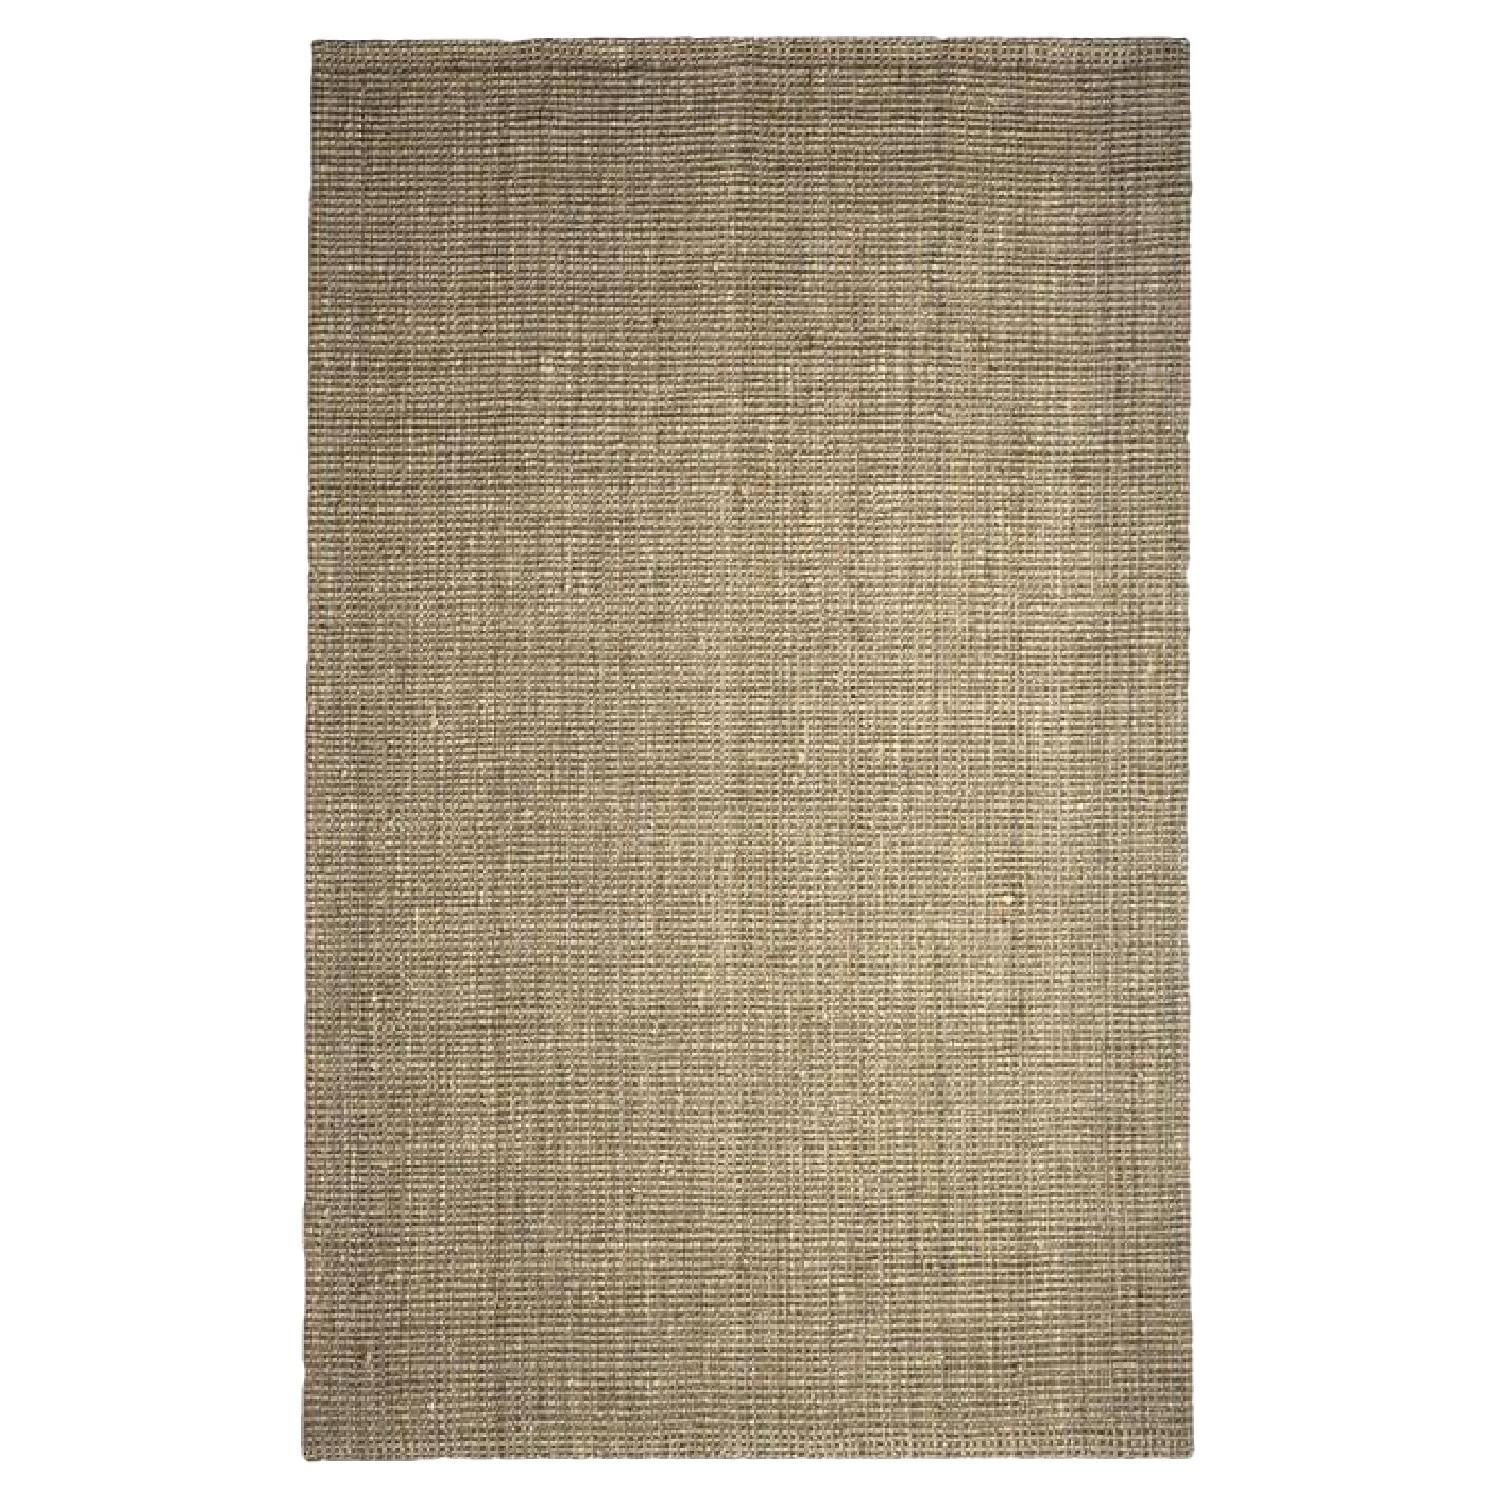 West Elm Jute Boucle Rug in Flax